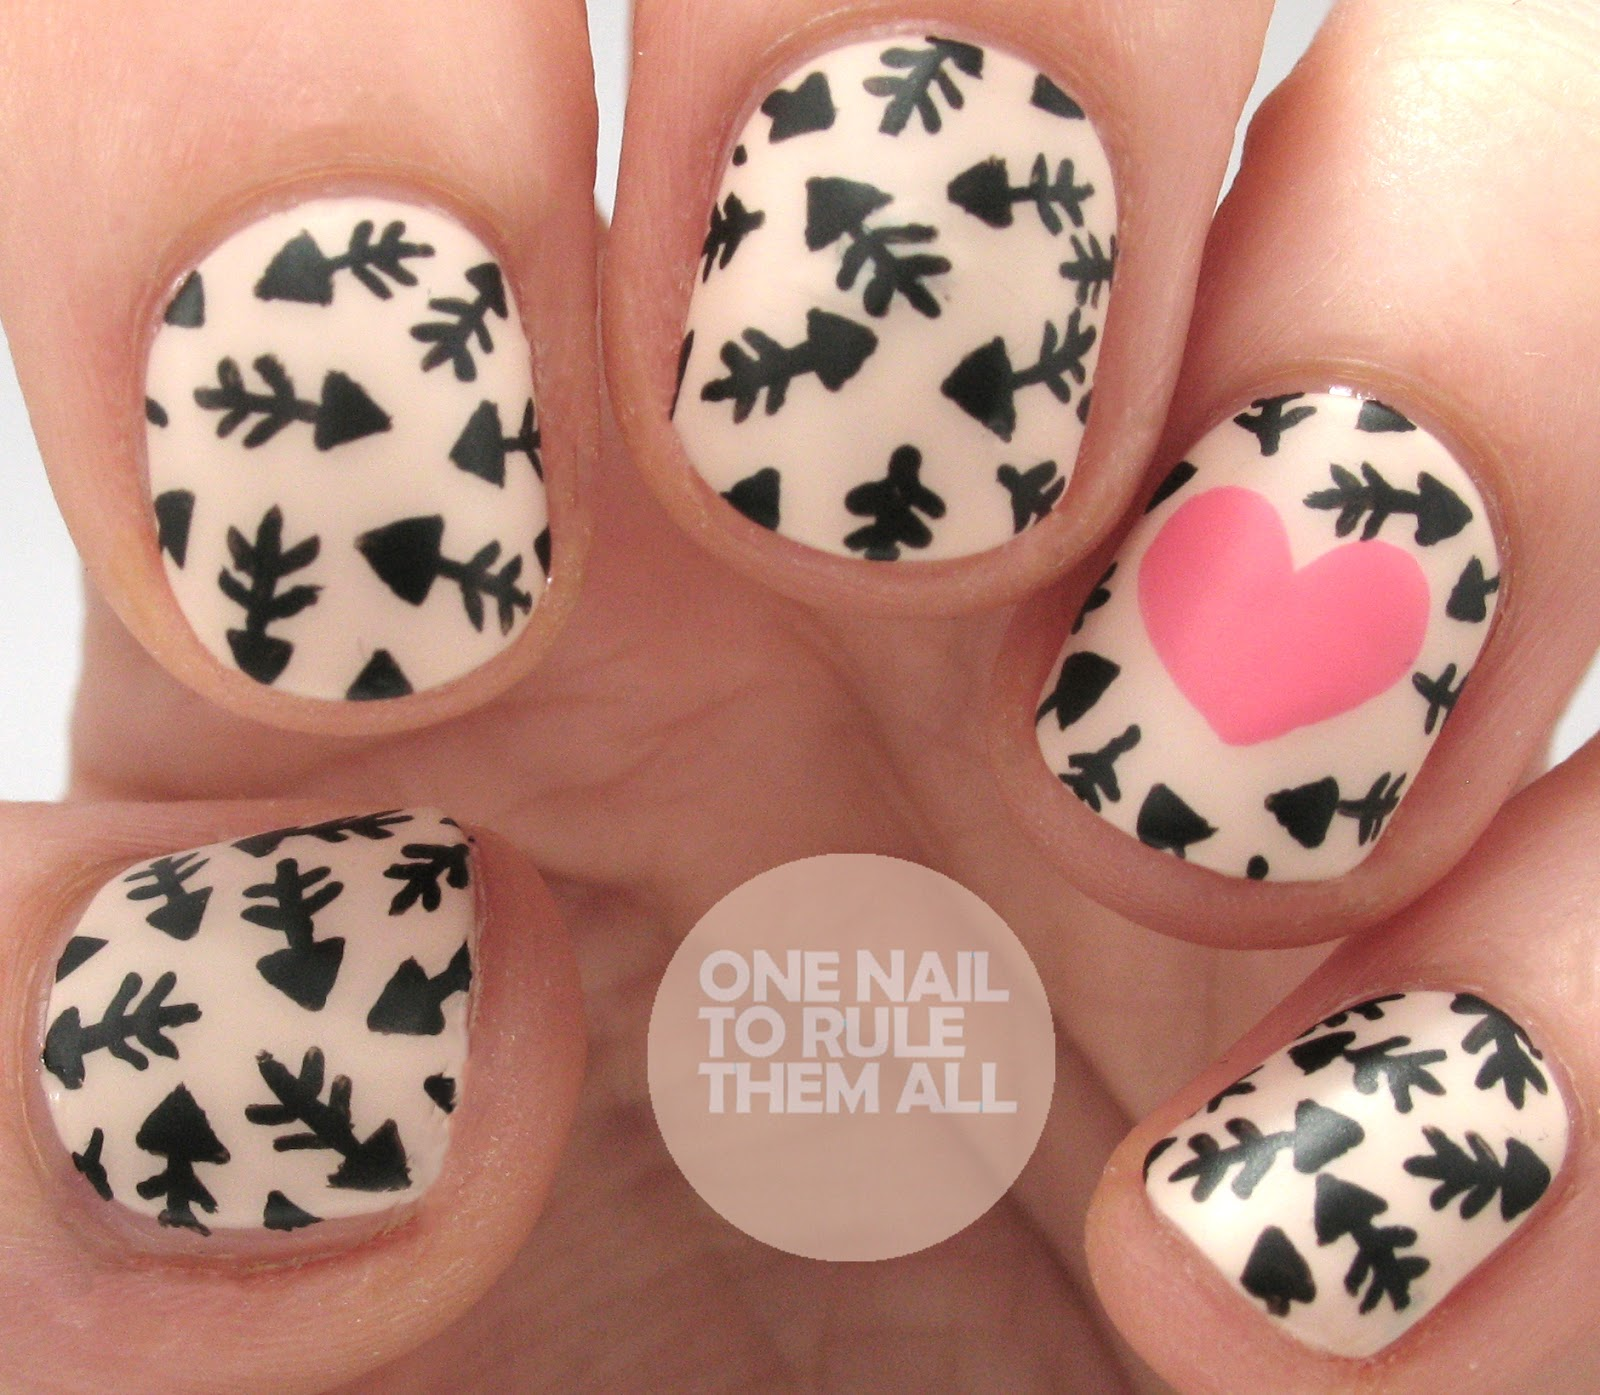 One Nail To Rule Them All Nail Art Threesome Polly Polish